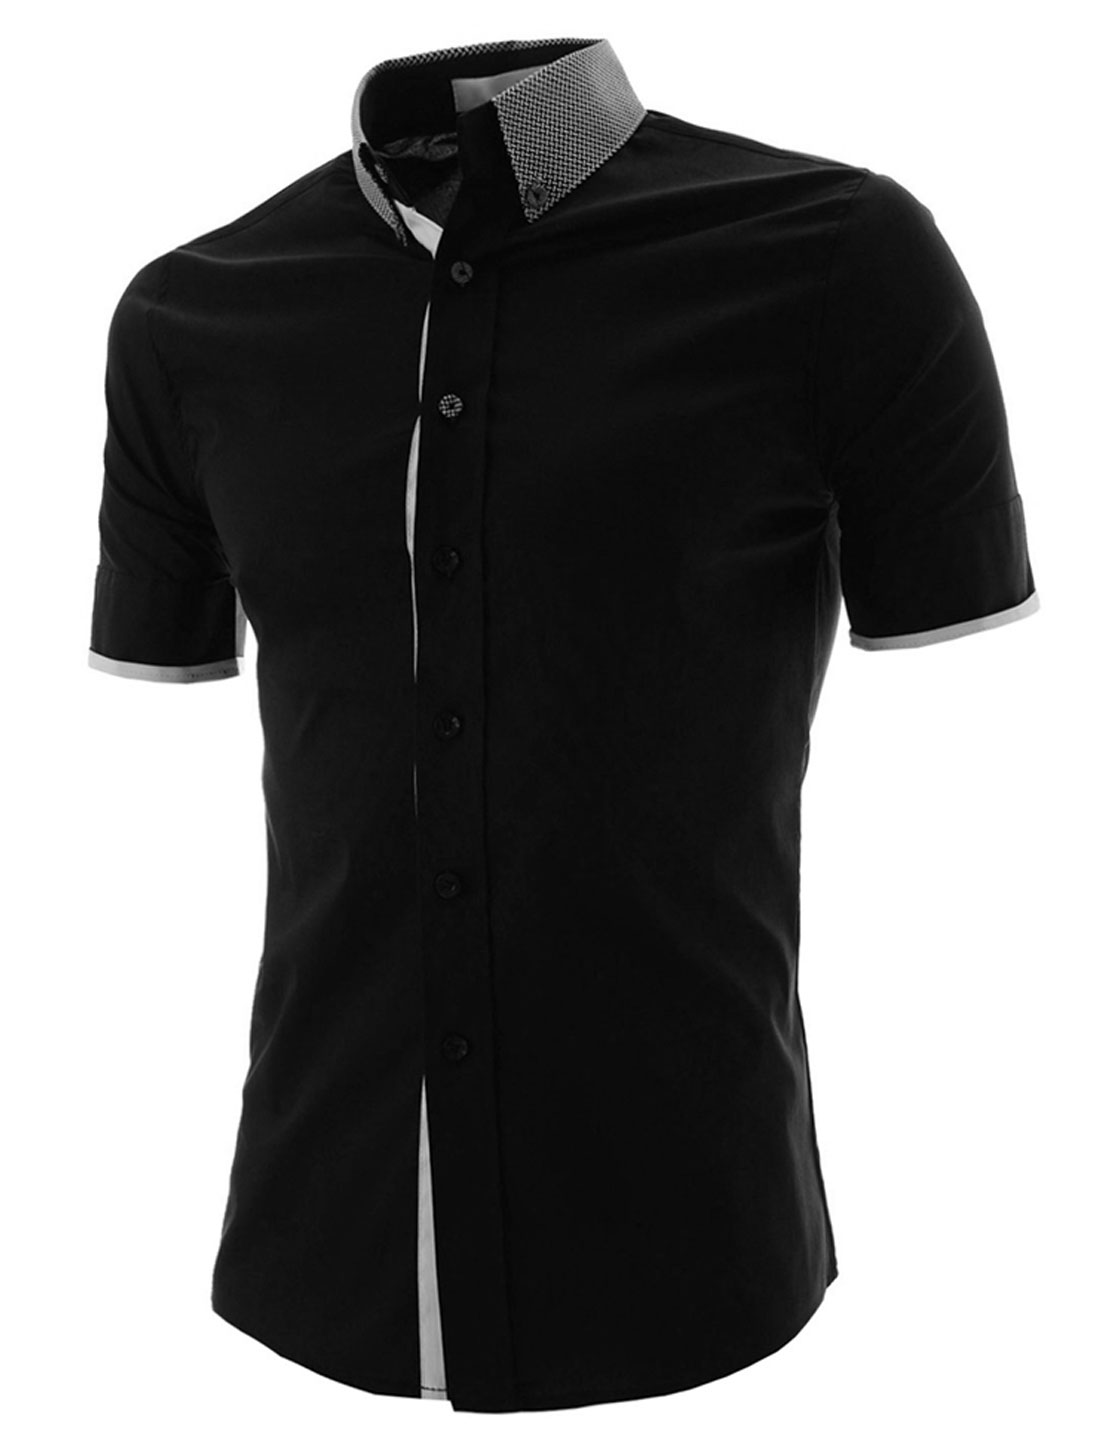 Men Convertible Collar Buttoned Cuffs Single Breasted Shirt Black M